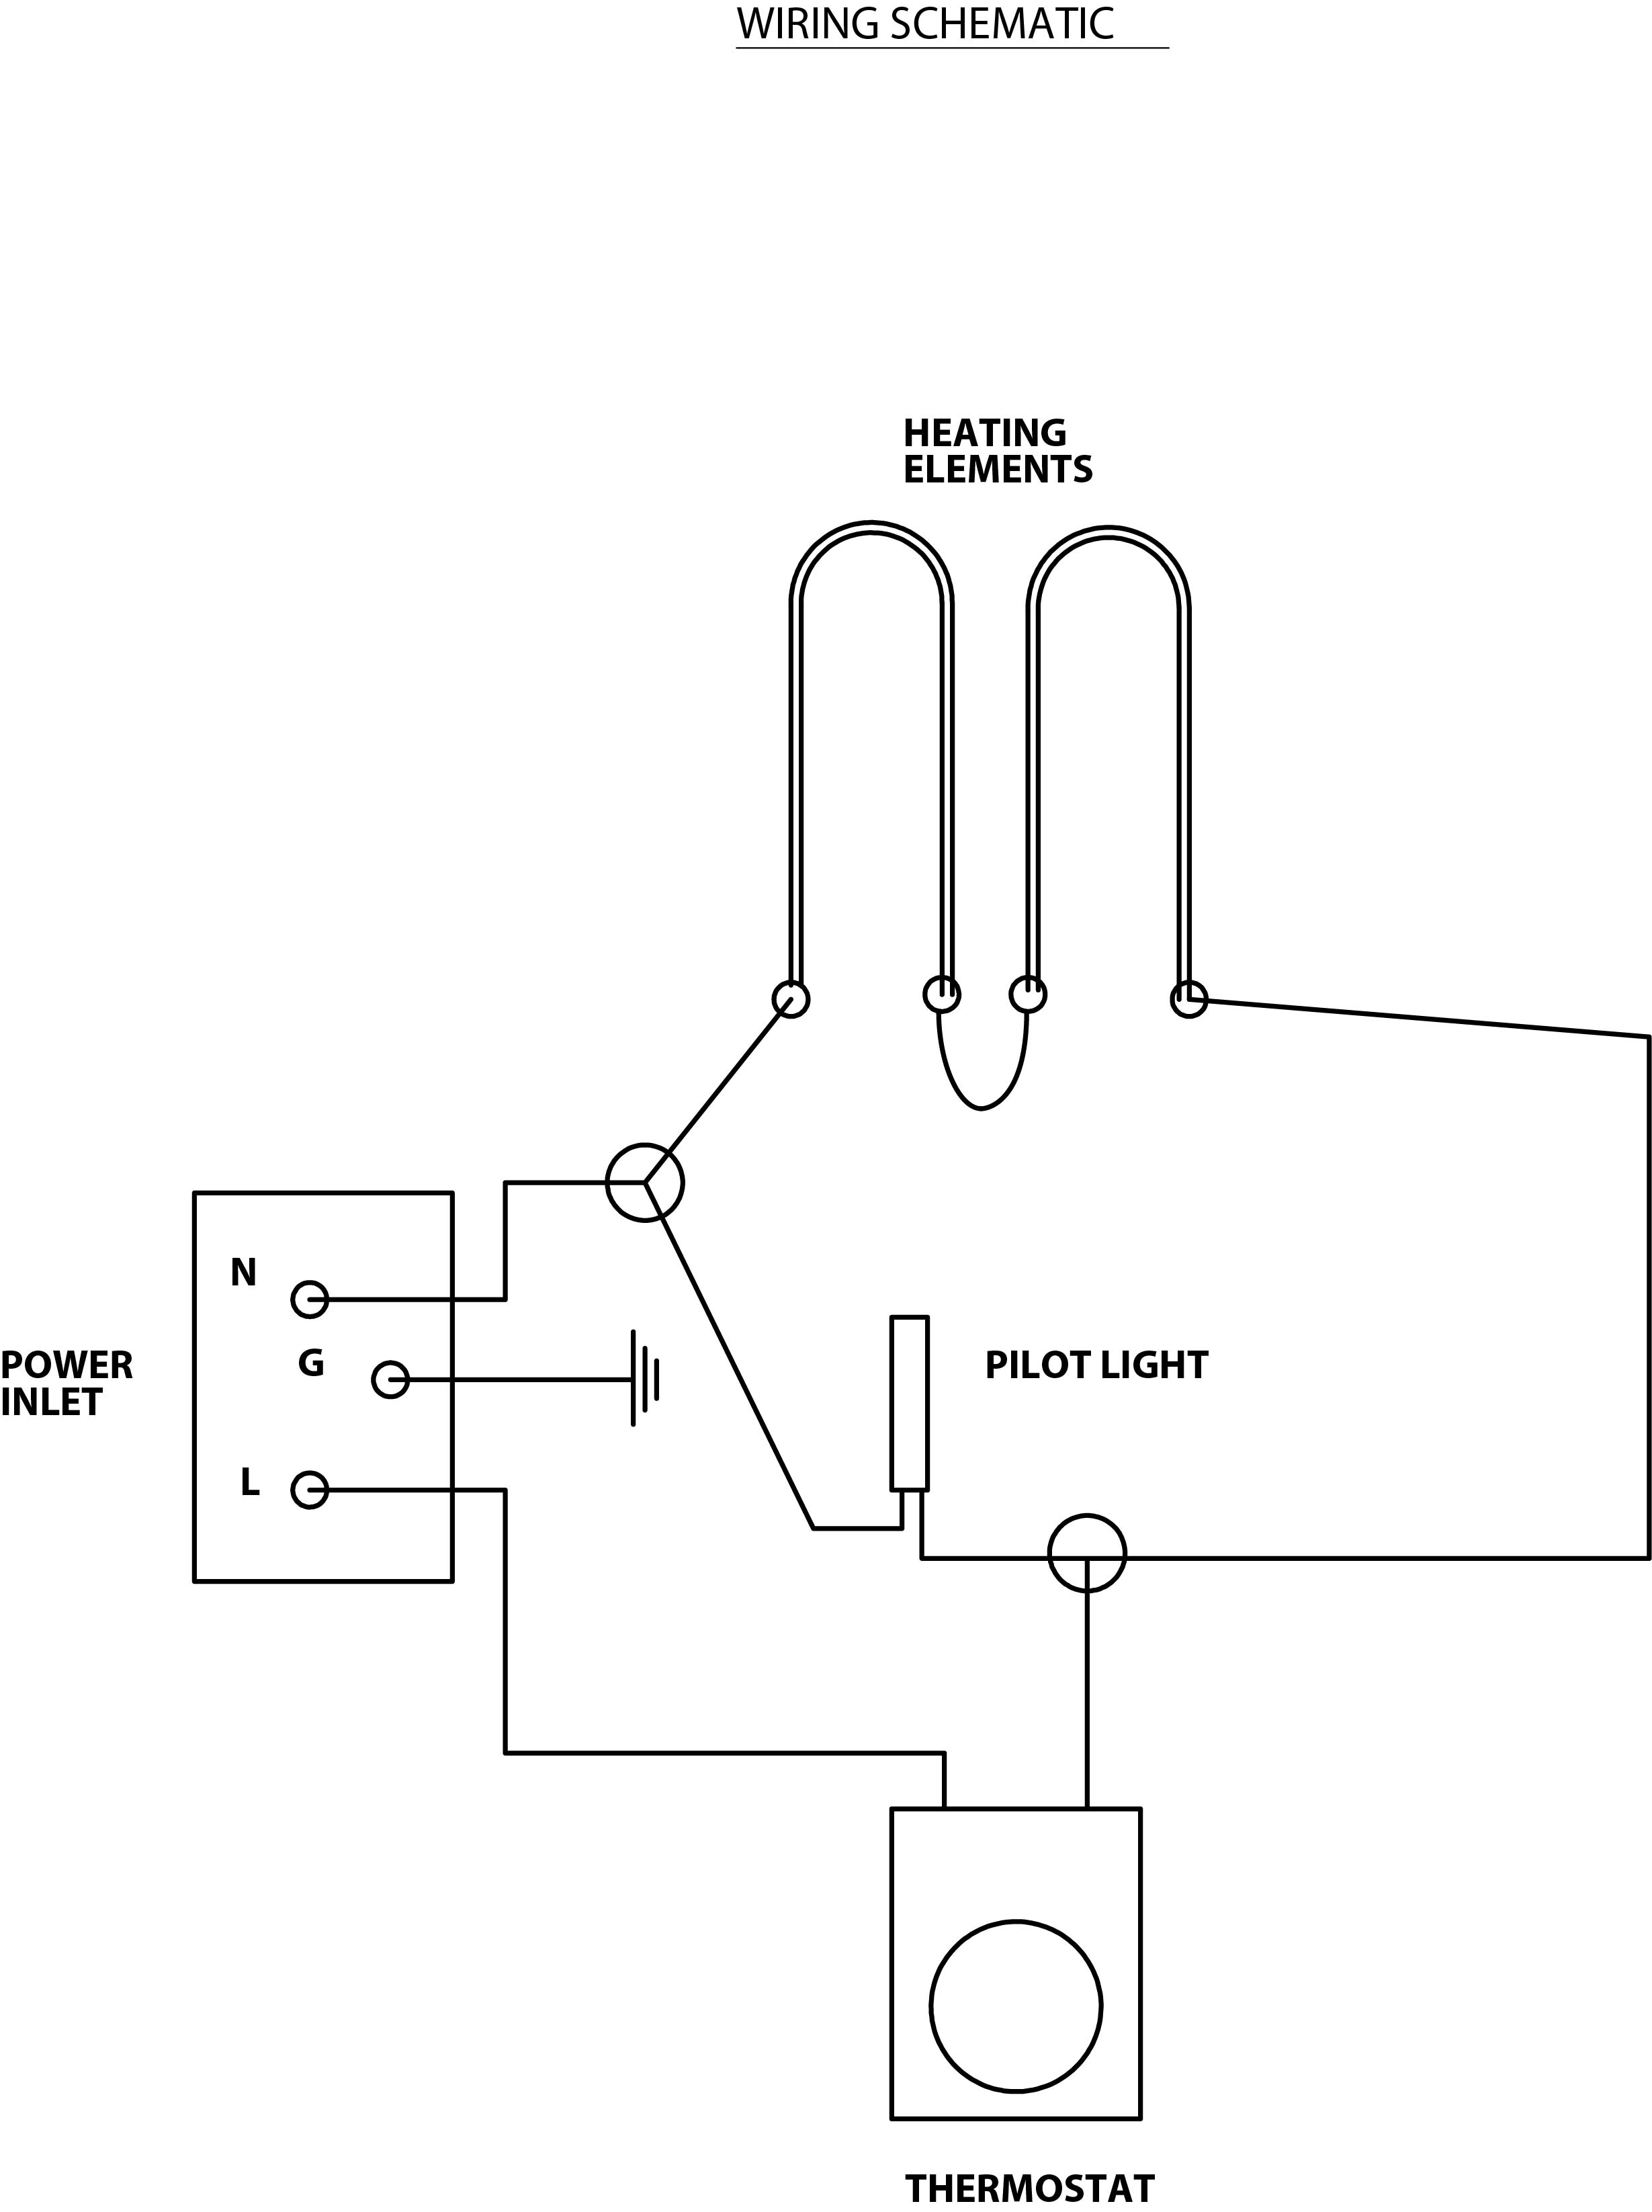 Kenmore Elite Dryer Wire Diagram Not Lossing Wiring For Electric A Heating Element Free Engine Image